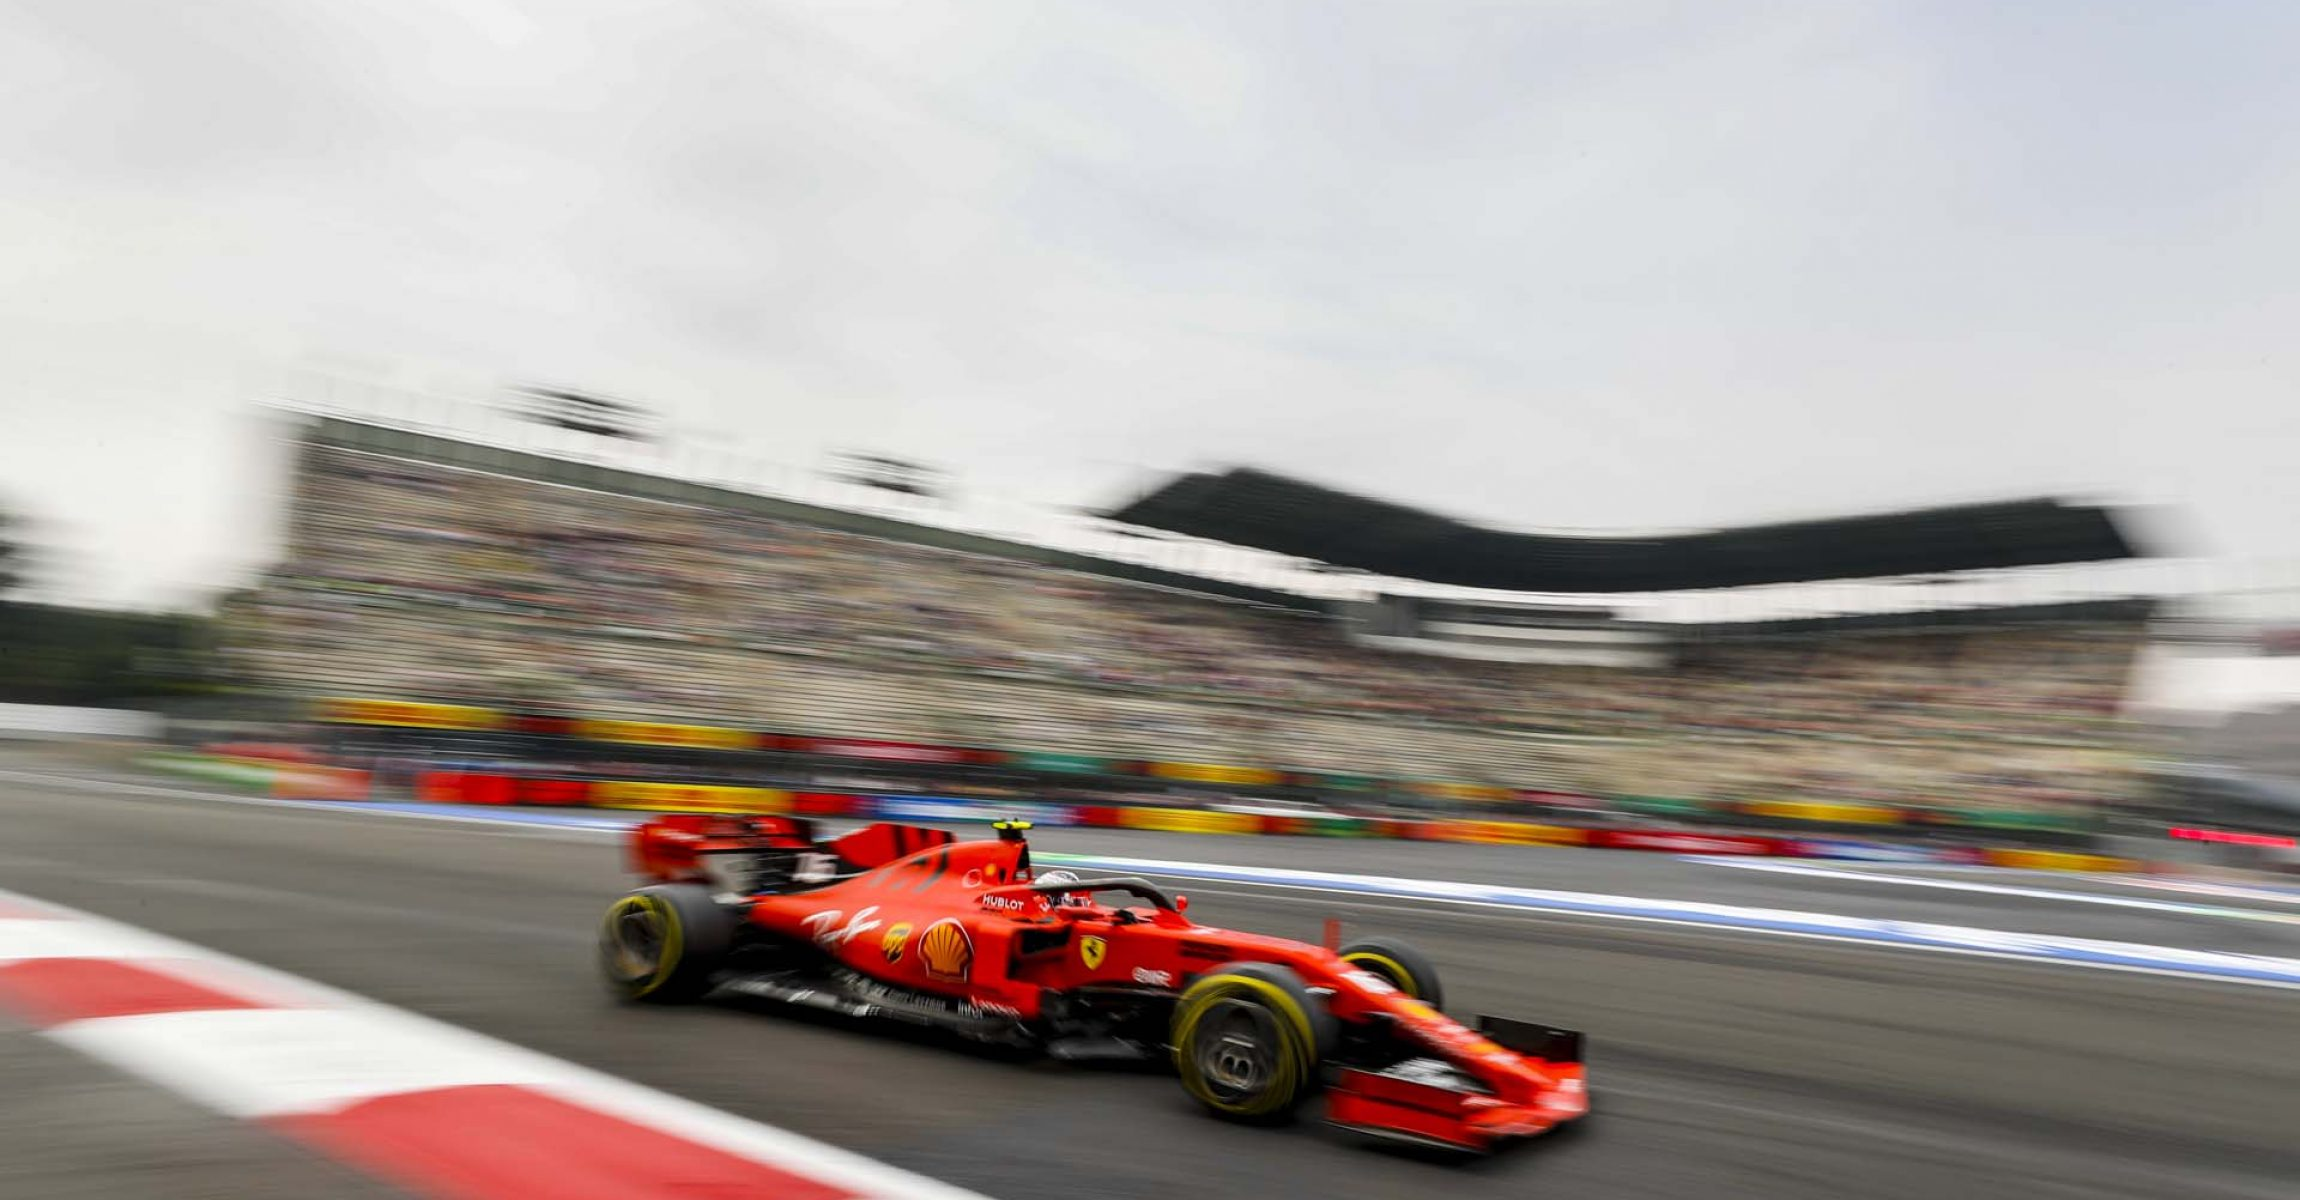 MEXICO CITY - OCTOBER 25: Charles Leclerc, Ferrari SF90 during the 2019 Formula One Mexican Grand Prix at Autodromo Hermanos Rodriguez, on October 25, 2019 in Mexico City, Mexico. (Photo by Steven Tee / LAT Images)